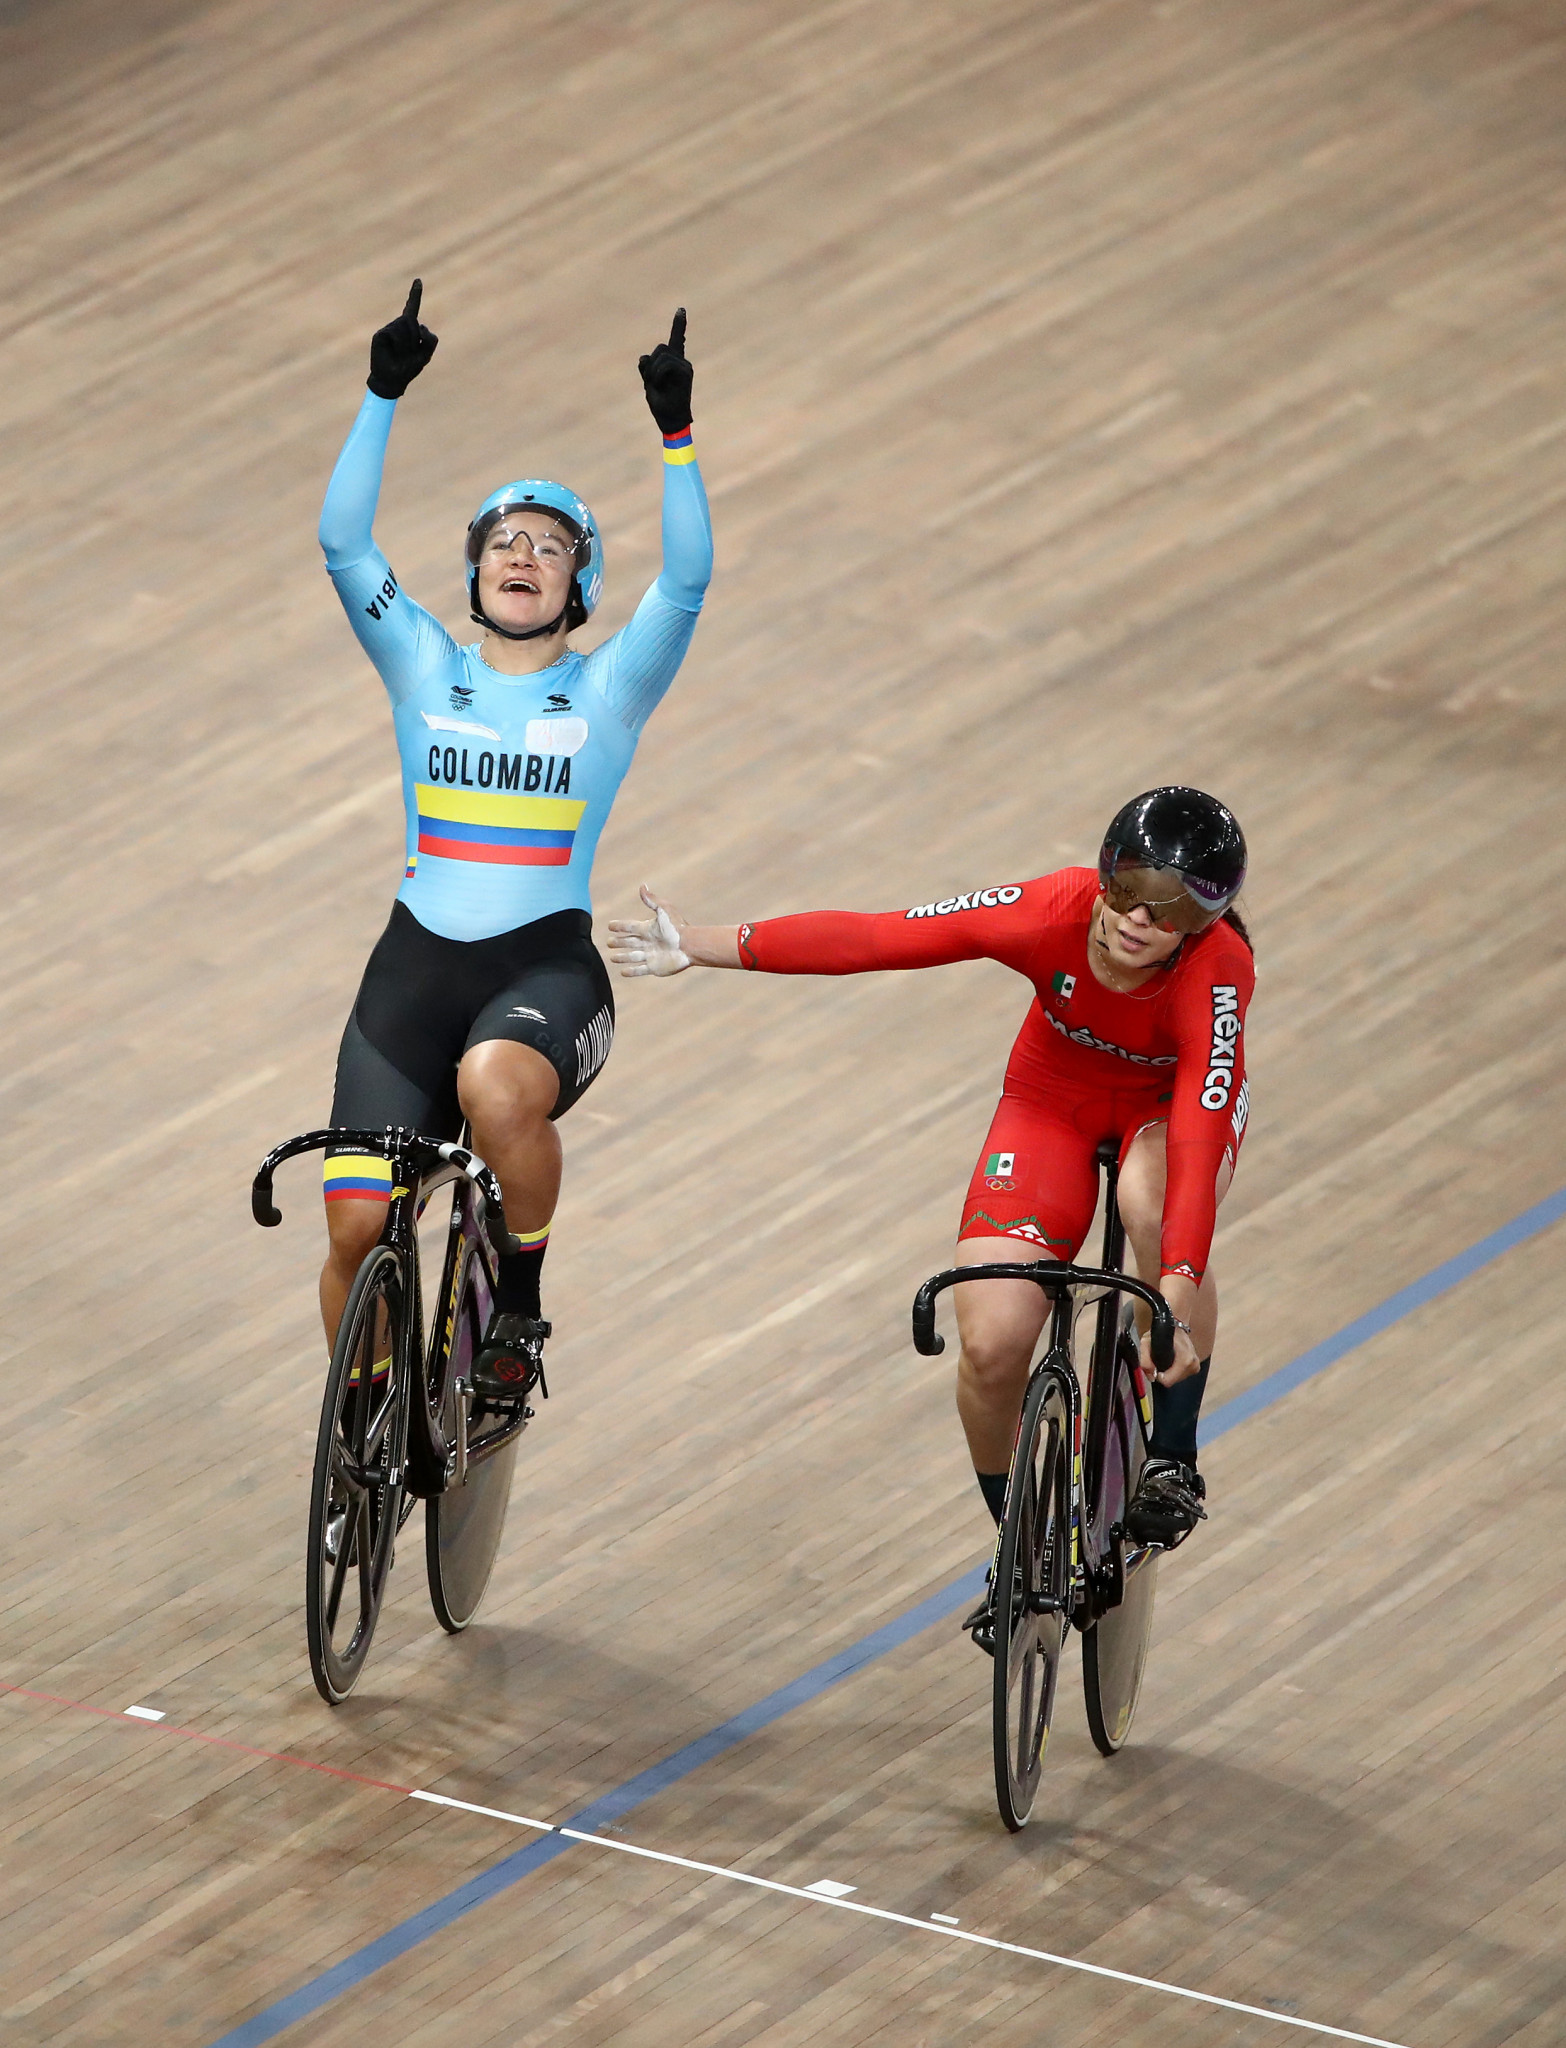 Colombia's Martha Bayona Pineda was the victor in the women's keirin ©Lima 2019